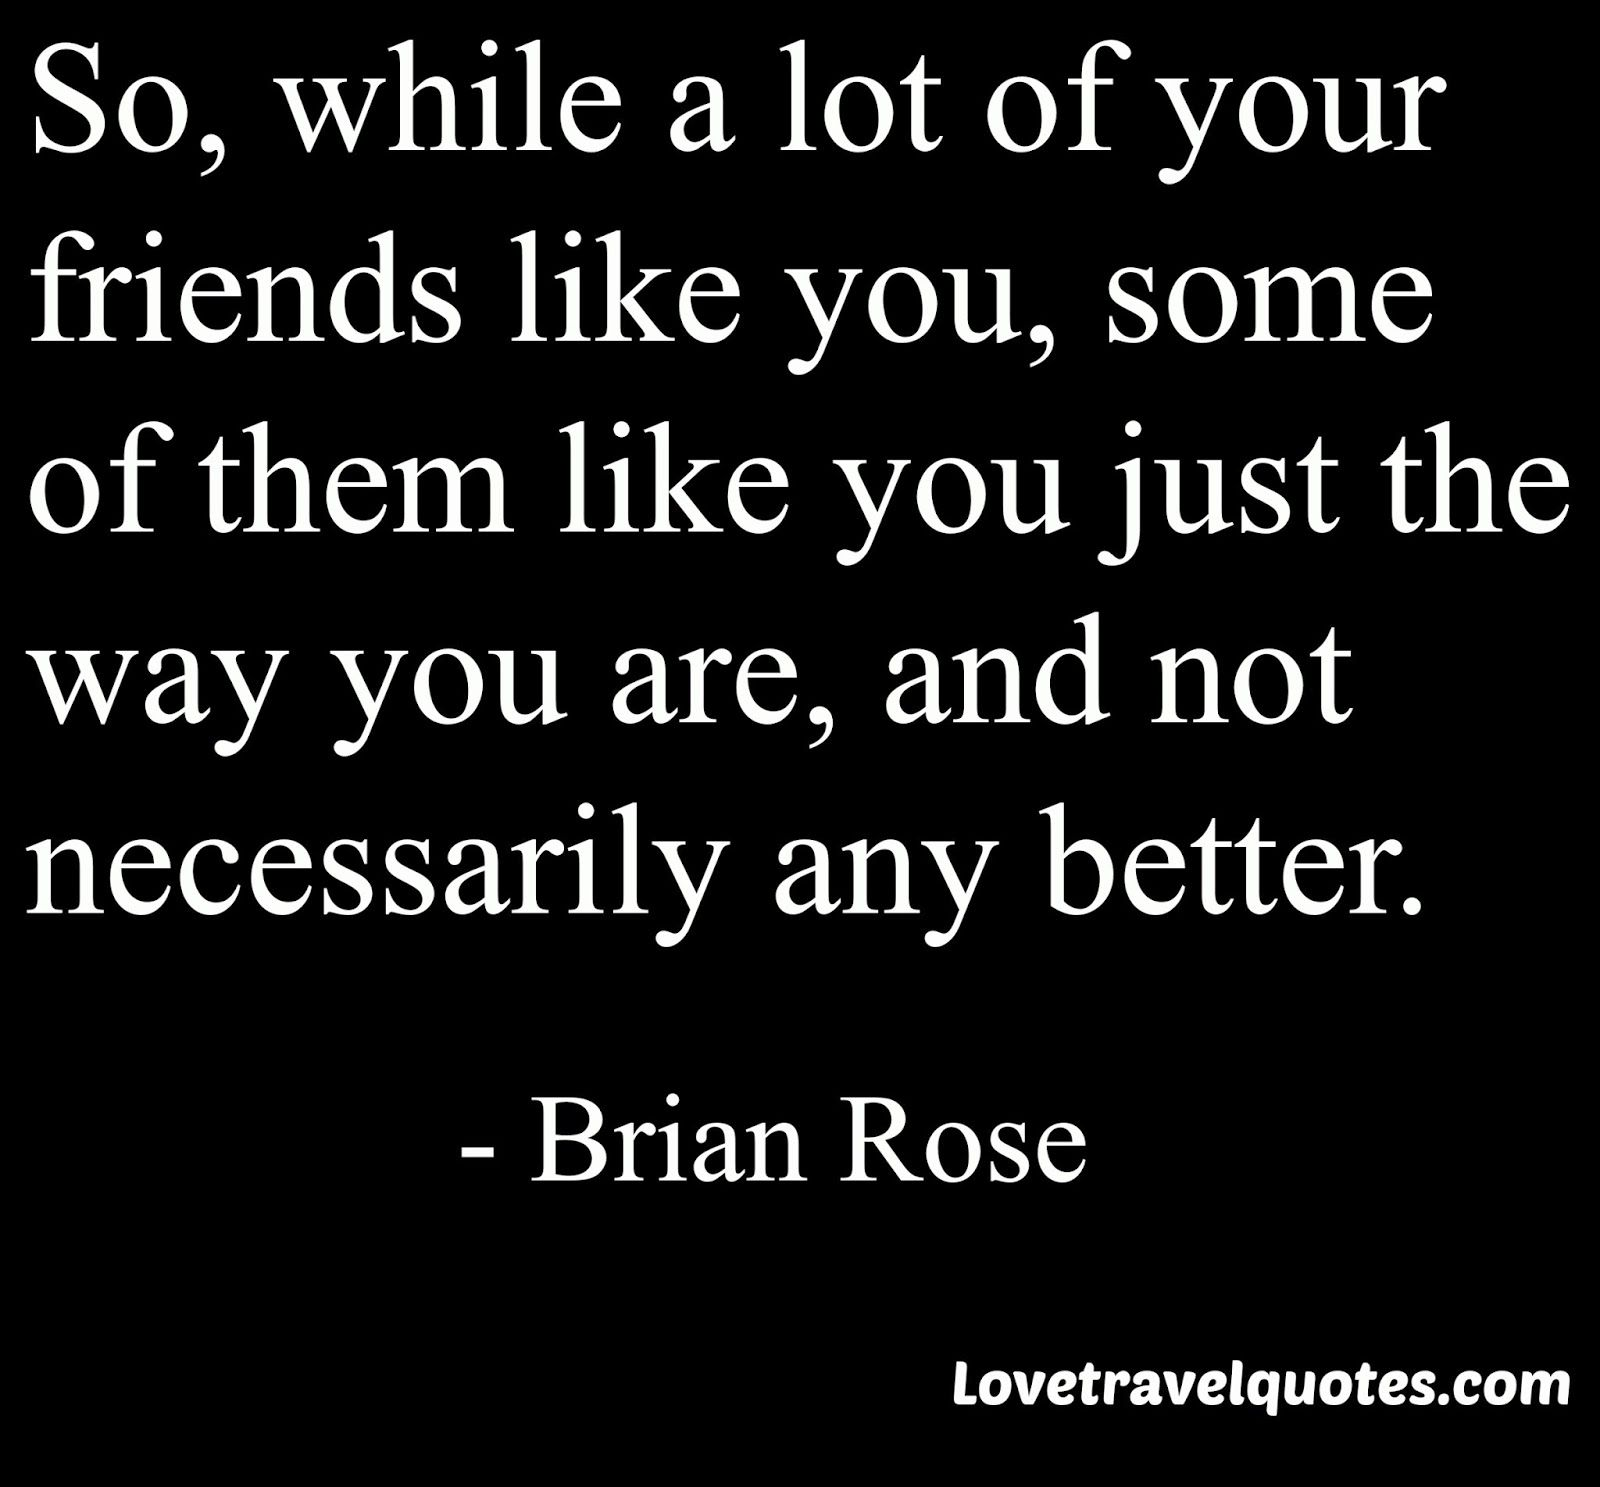 Like us on https://www.facebook.com/lovetravelquotes and follow us on twitter: https://twitter.com/LoveTravelQuote  #brianrose #londonreal #motivational #inspirational #lifequotes #wisequotes